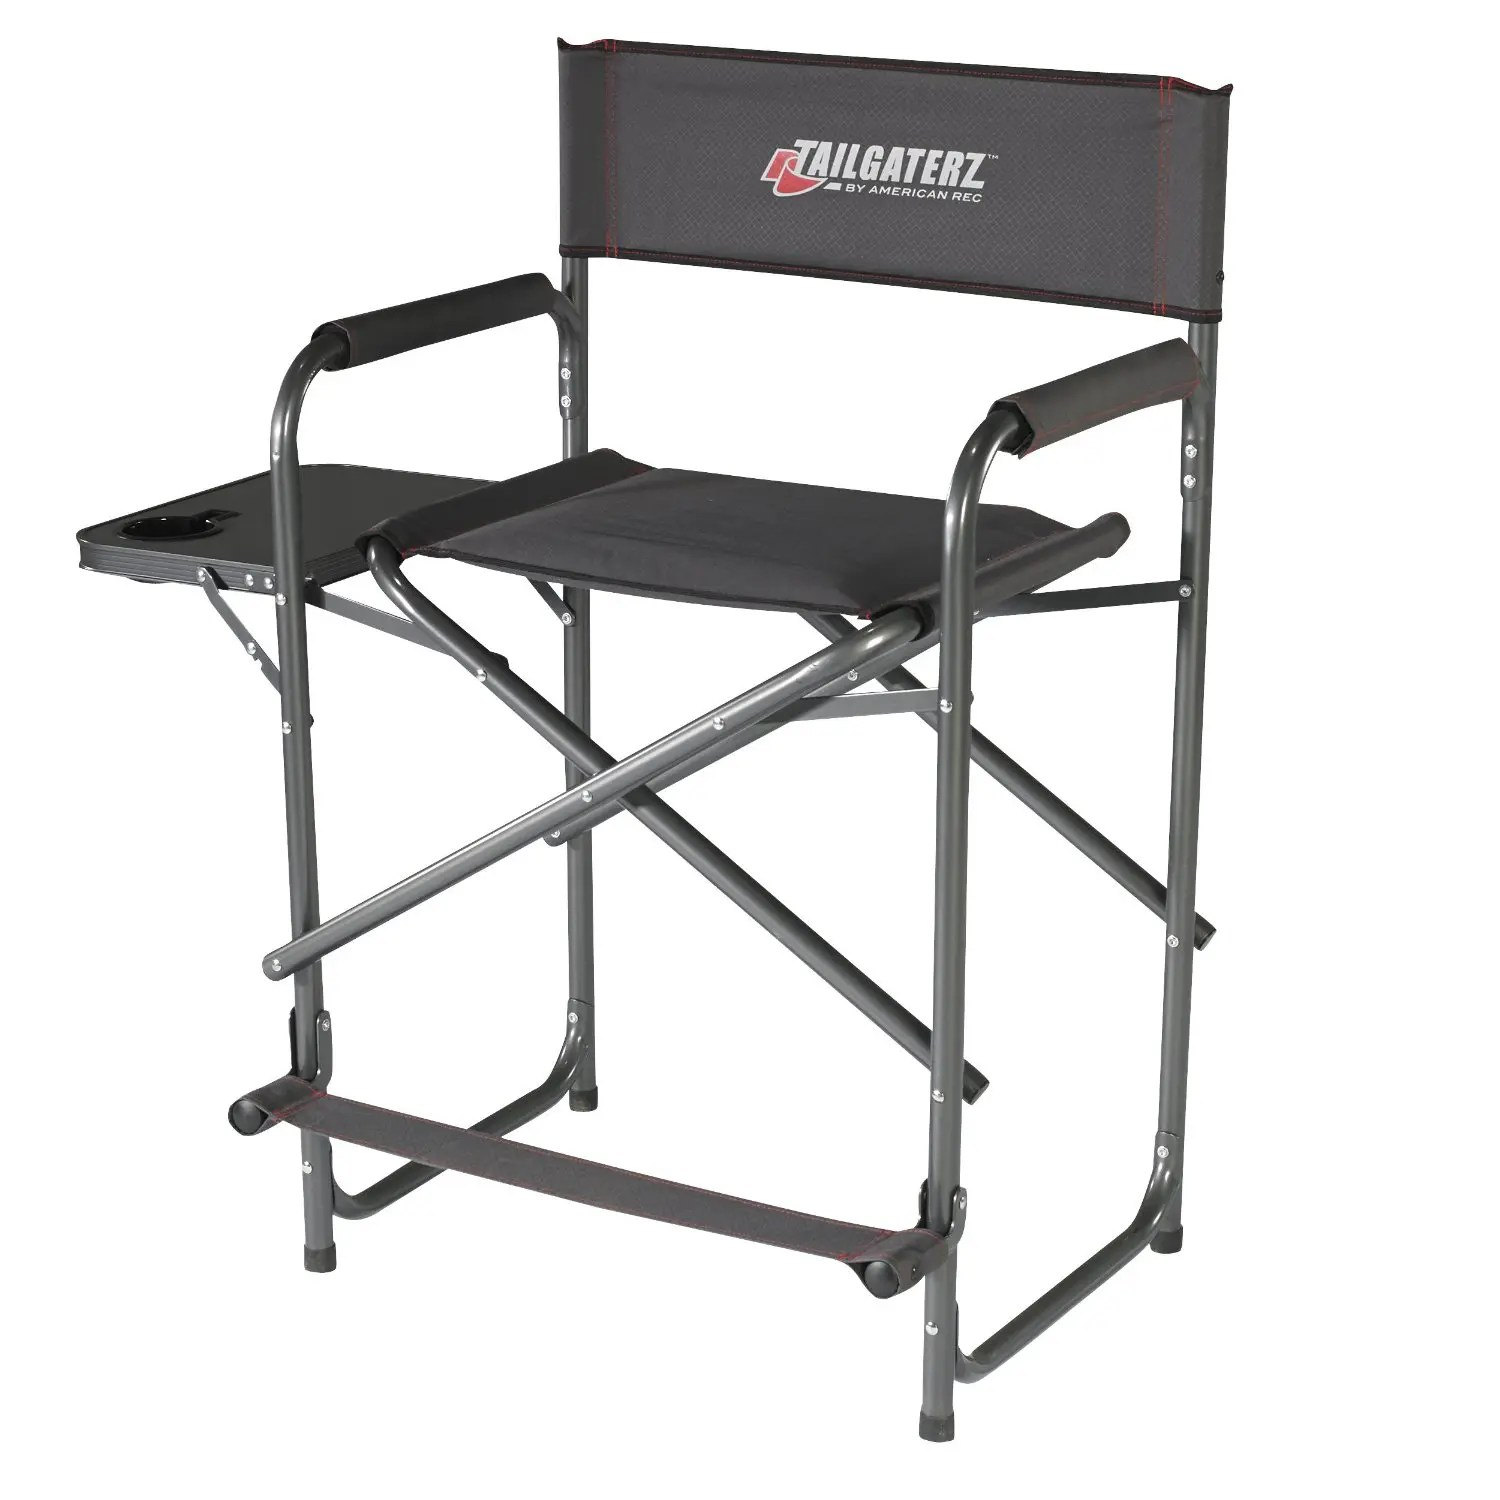 heavy duty folding chair with side table ergonomic john lewis tailgaterz tall camping directors review nametailgaterz jpg